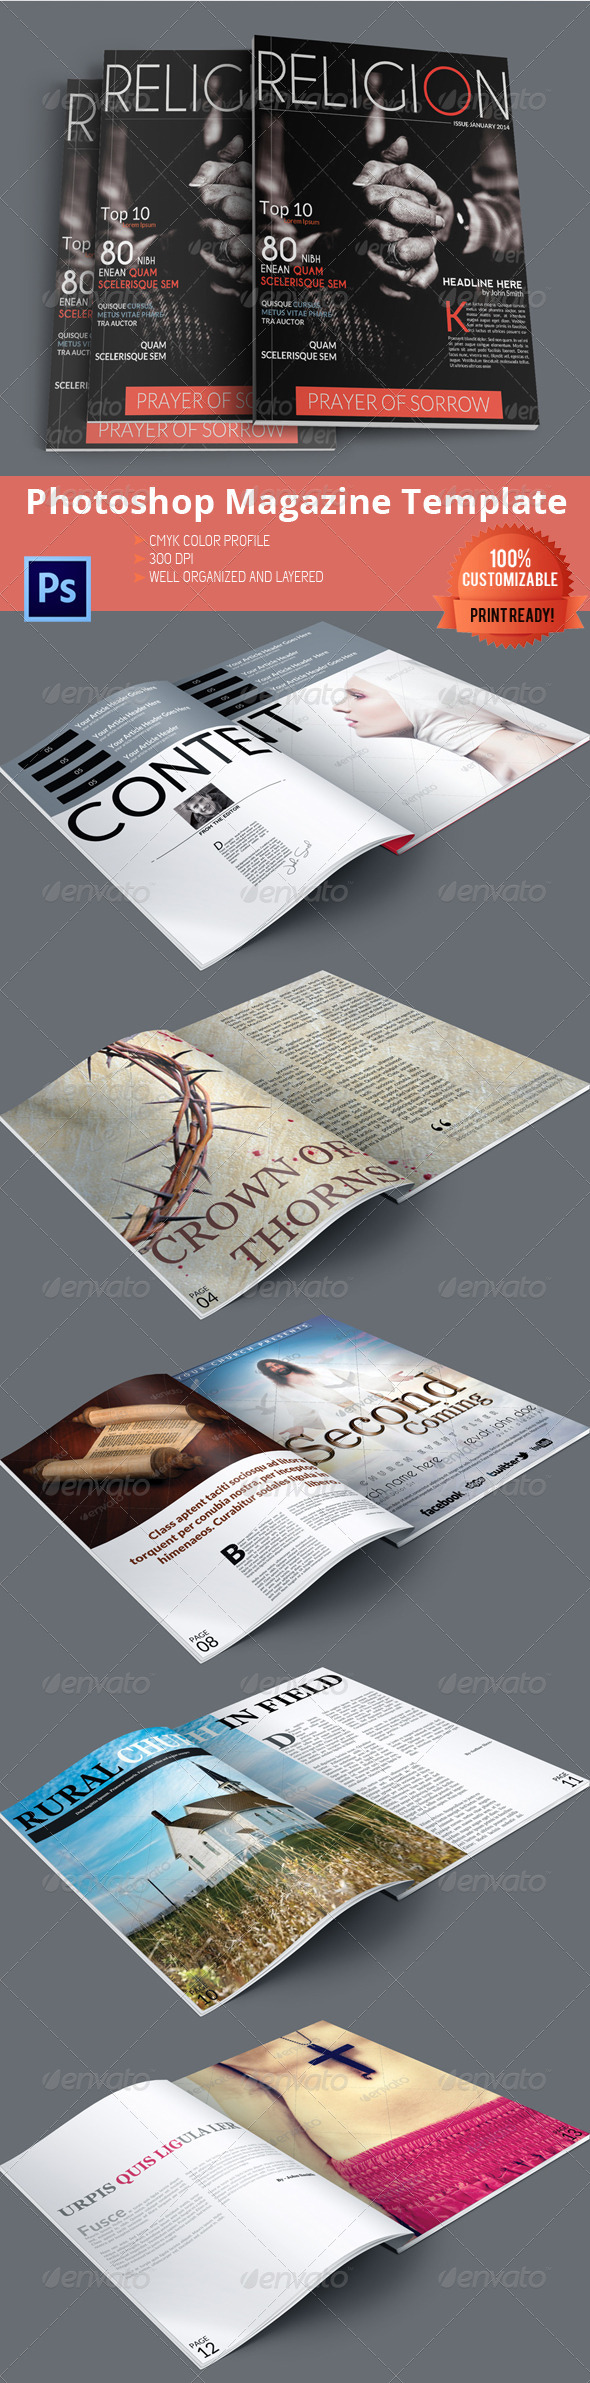 GraphicRiver Religion Magazine Template 6395368